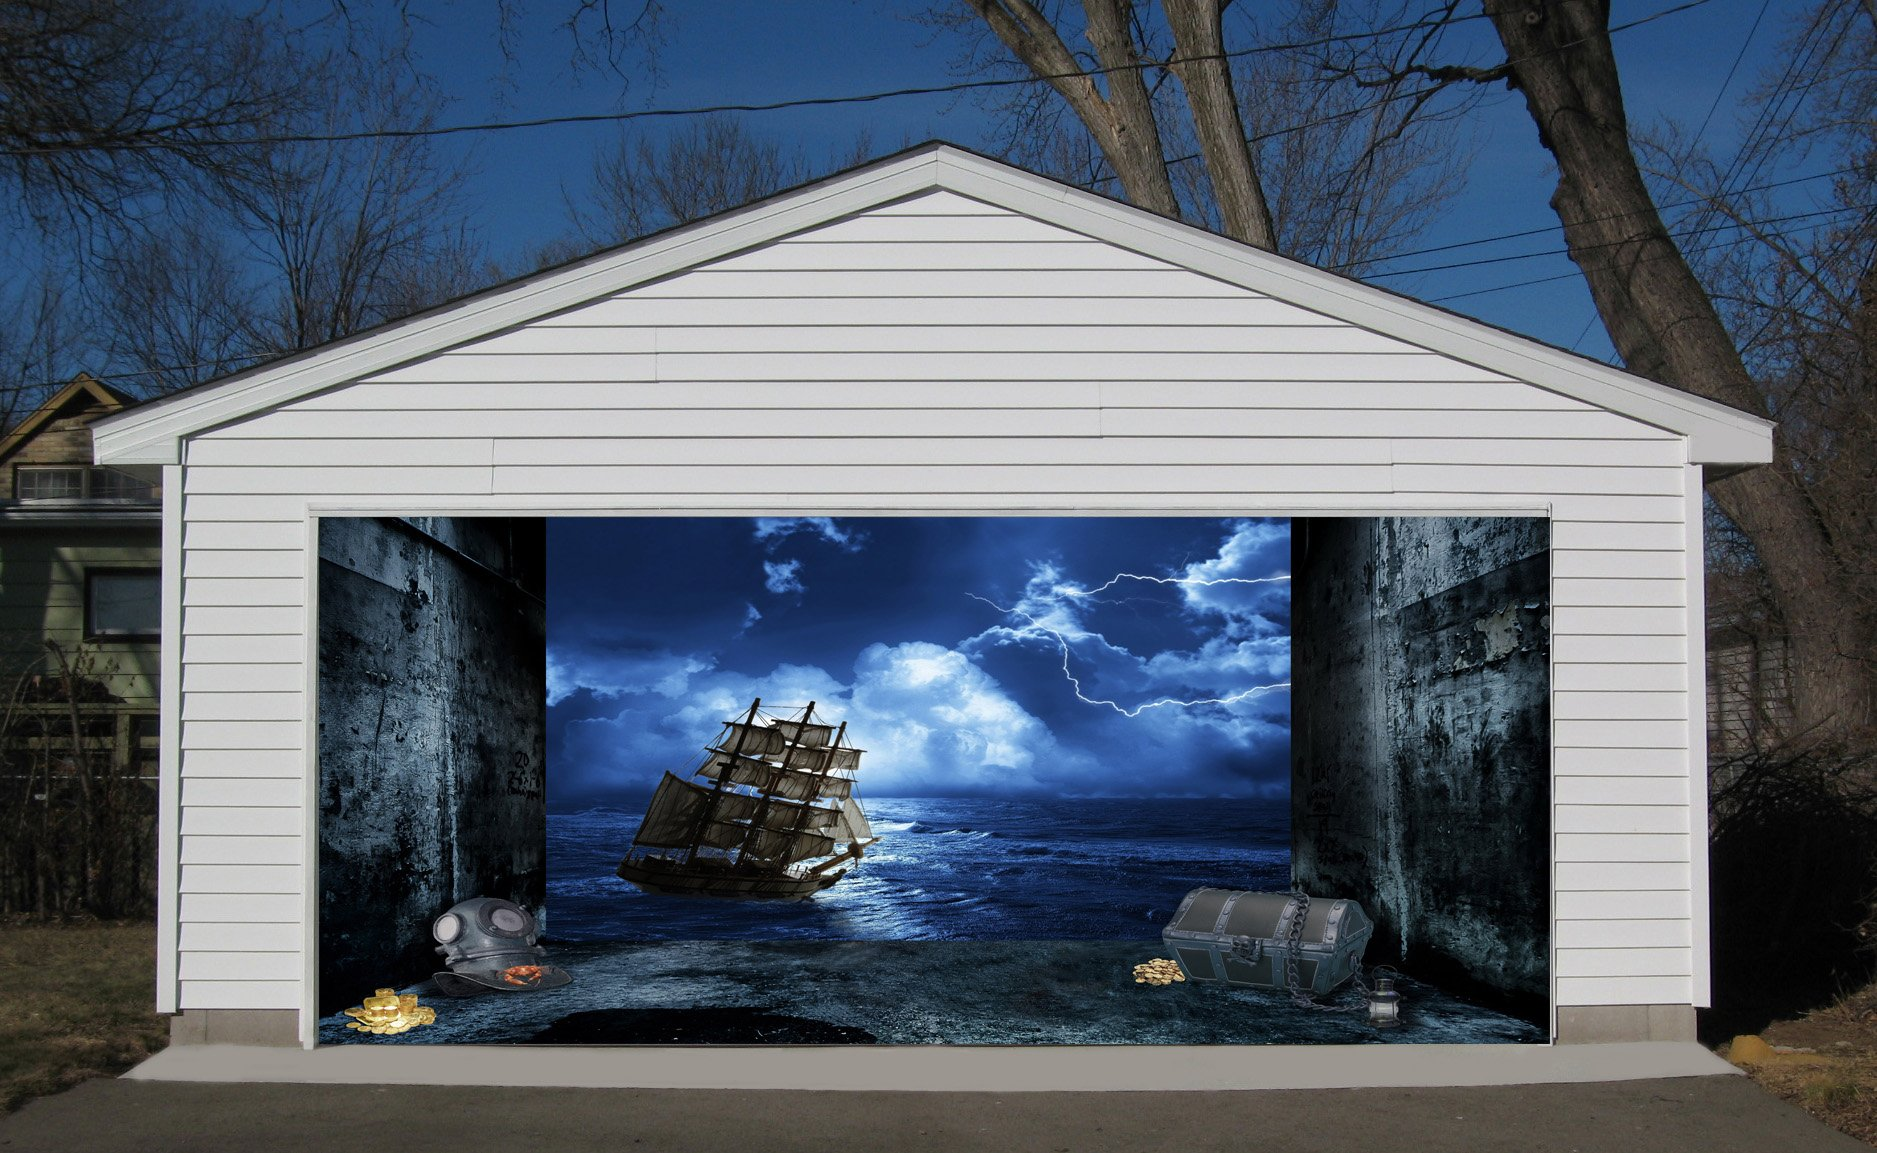 3D Effect Garage Door Billboard Sticker Cover Decor Old Ship in Storm 7x8 Feet